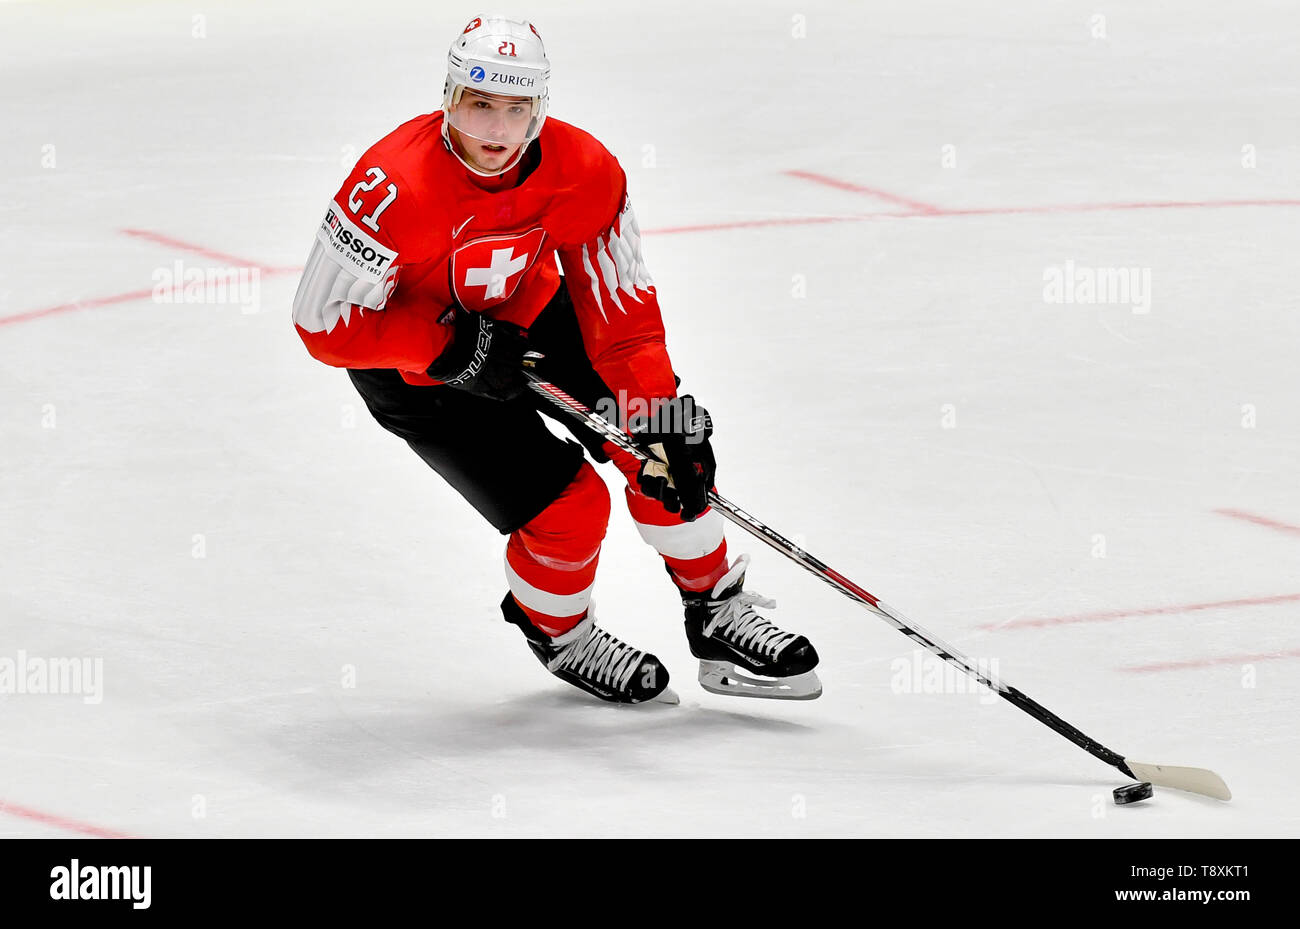 Kevin Fiala (CH) in action during the match between Switzerland and Norway within the 2019 IIHF World Championship in Bratislava, Slovakia, on May 15, 2019. (CTK Photo/Vit Simanek) Stock Photo